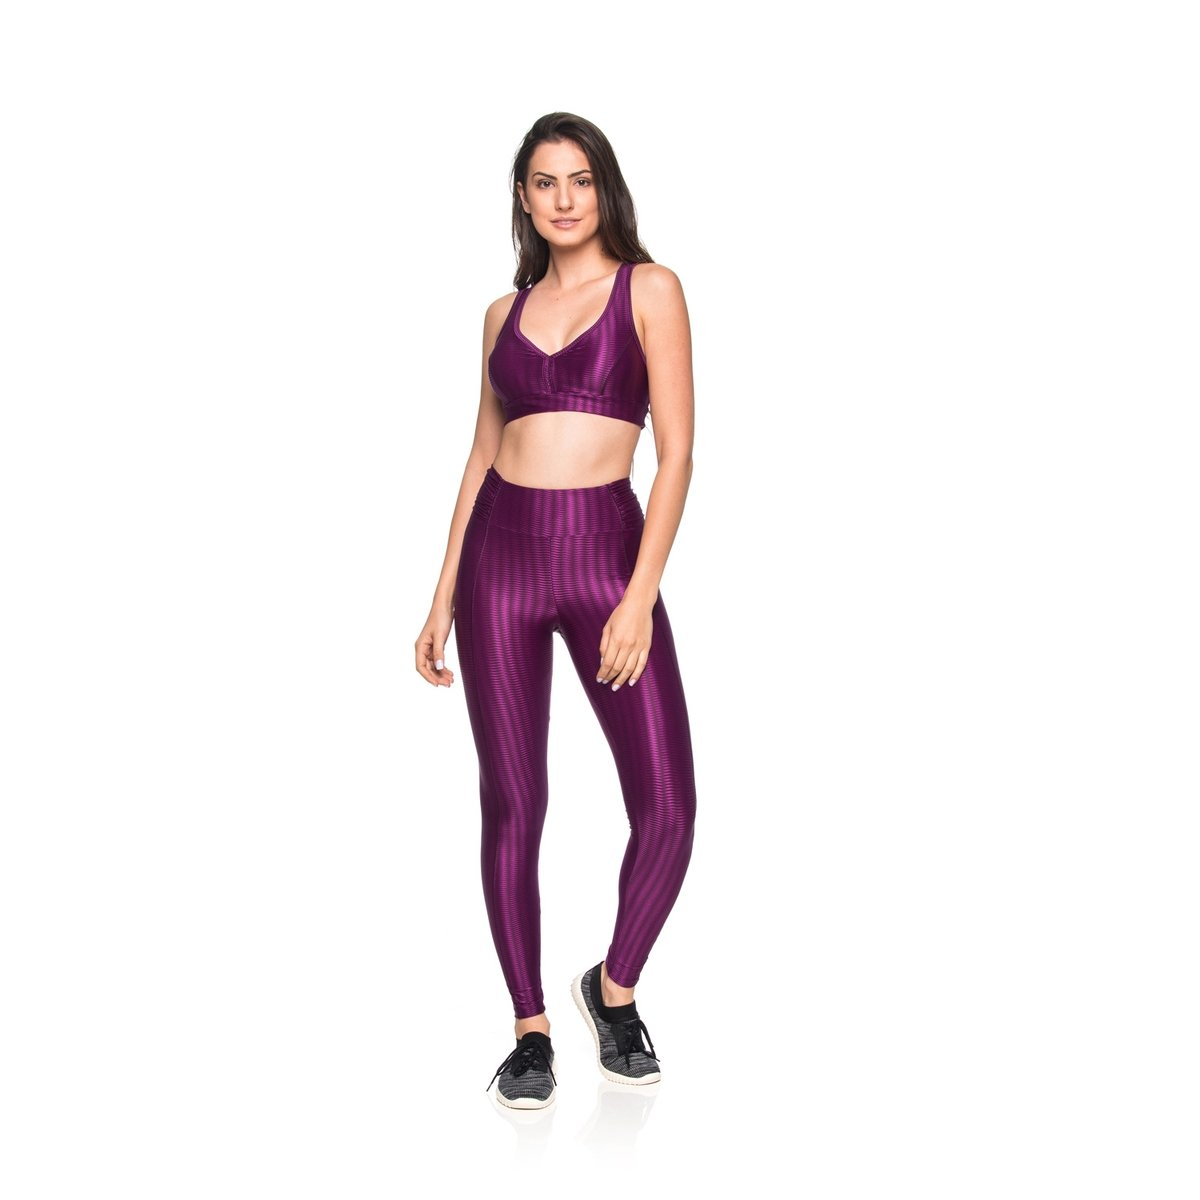 Fitness Leggings Leggings Elástica Roxo Cós Zig Mulher Fitness Fit qSSnxrE